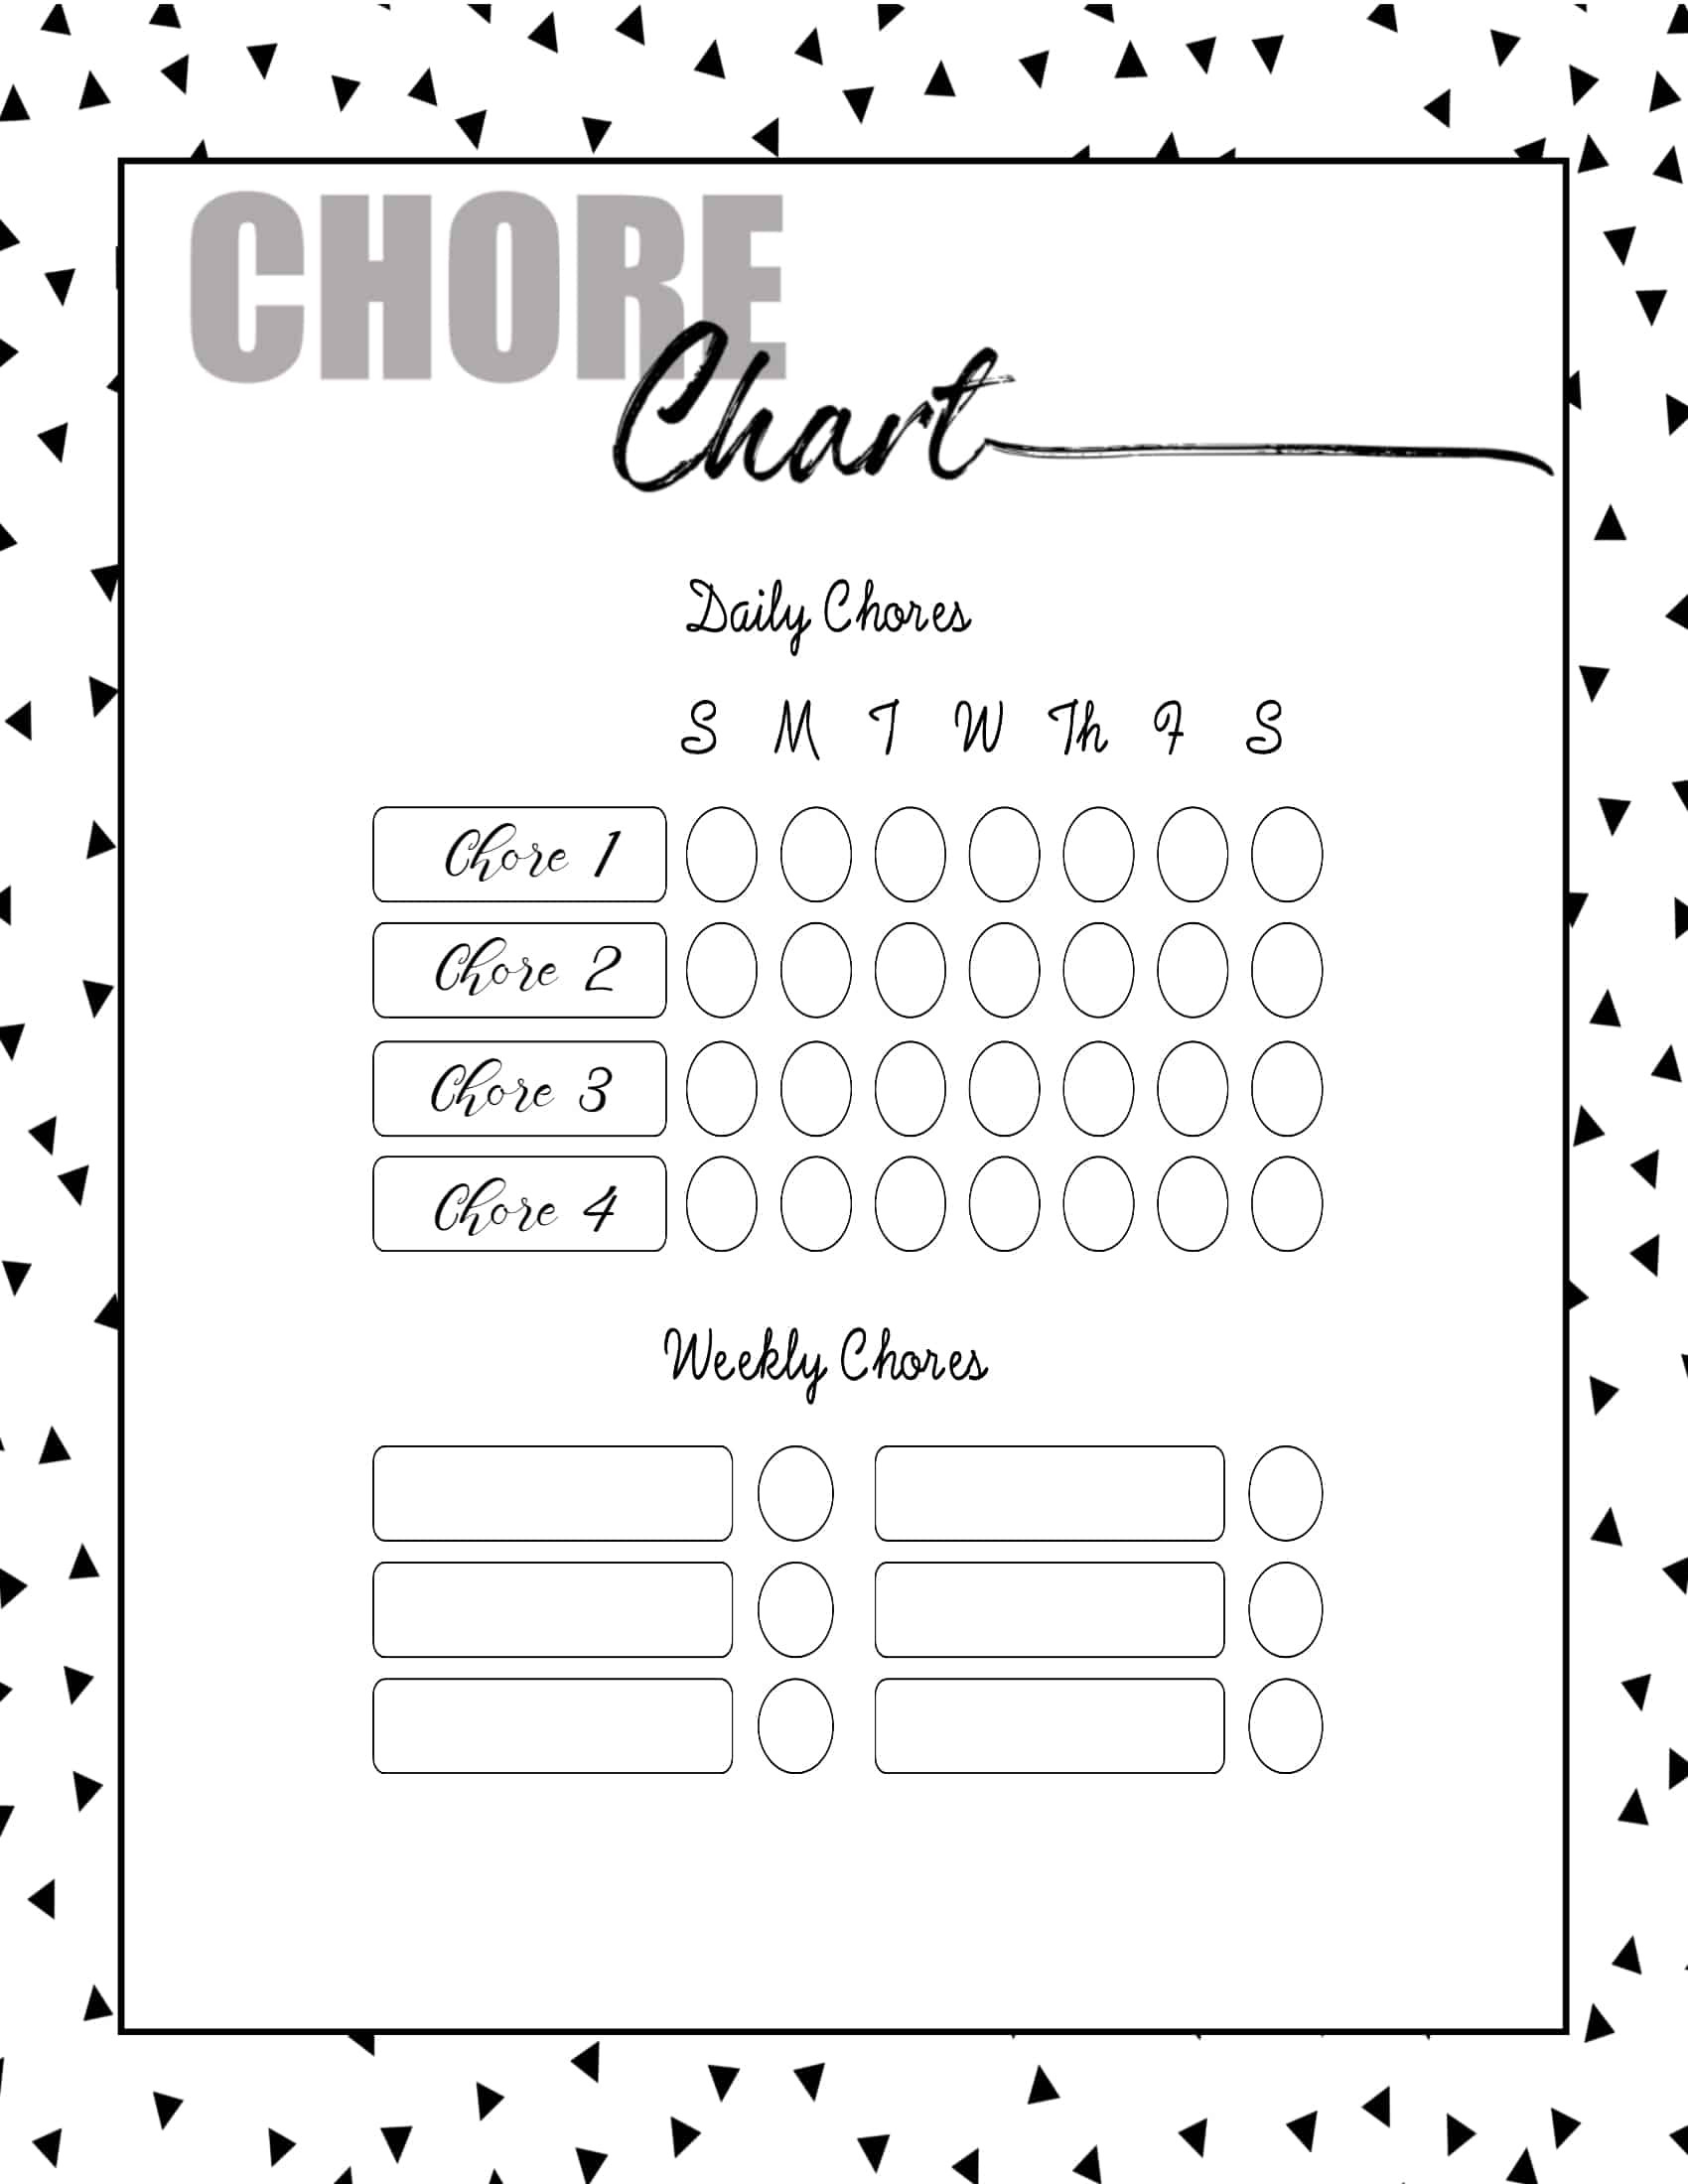 Roommate Chore Chart Template